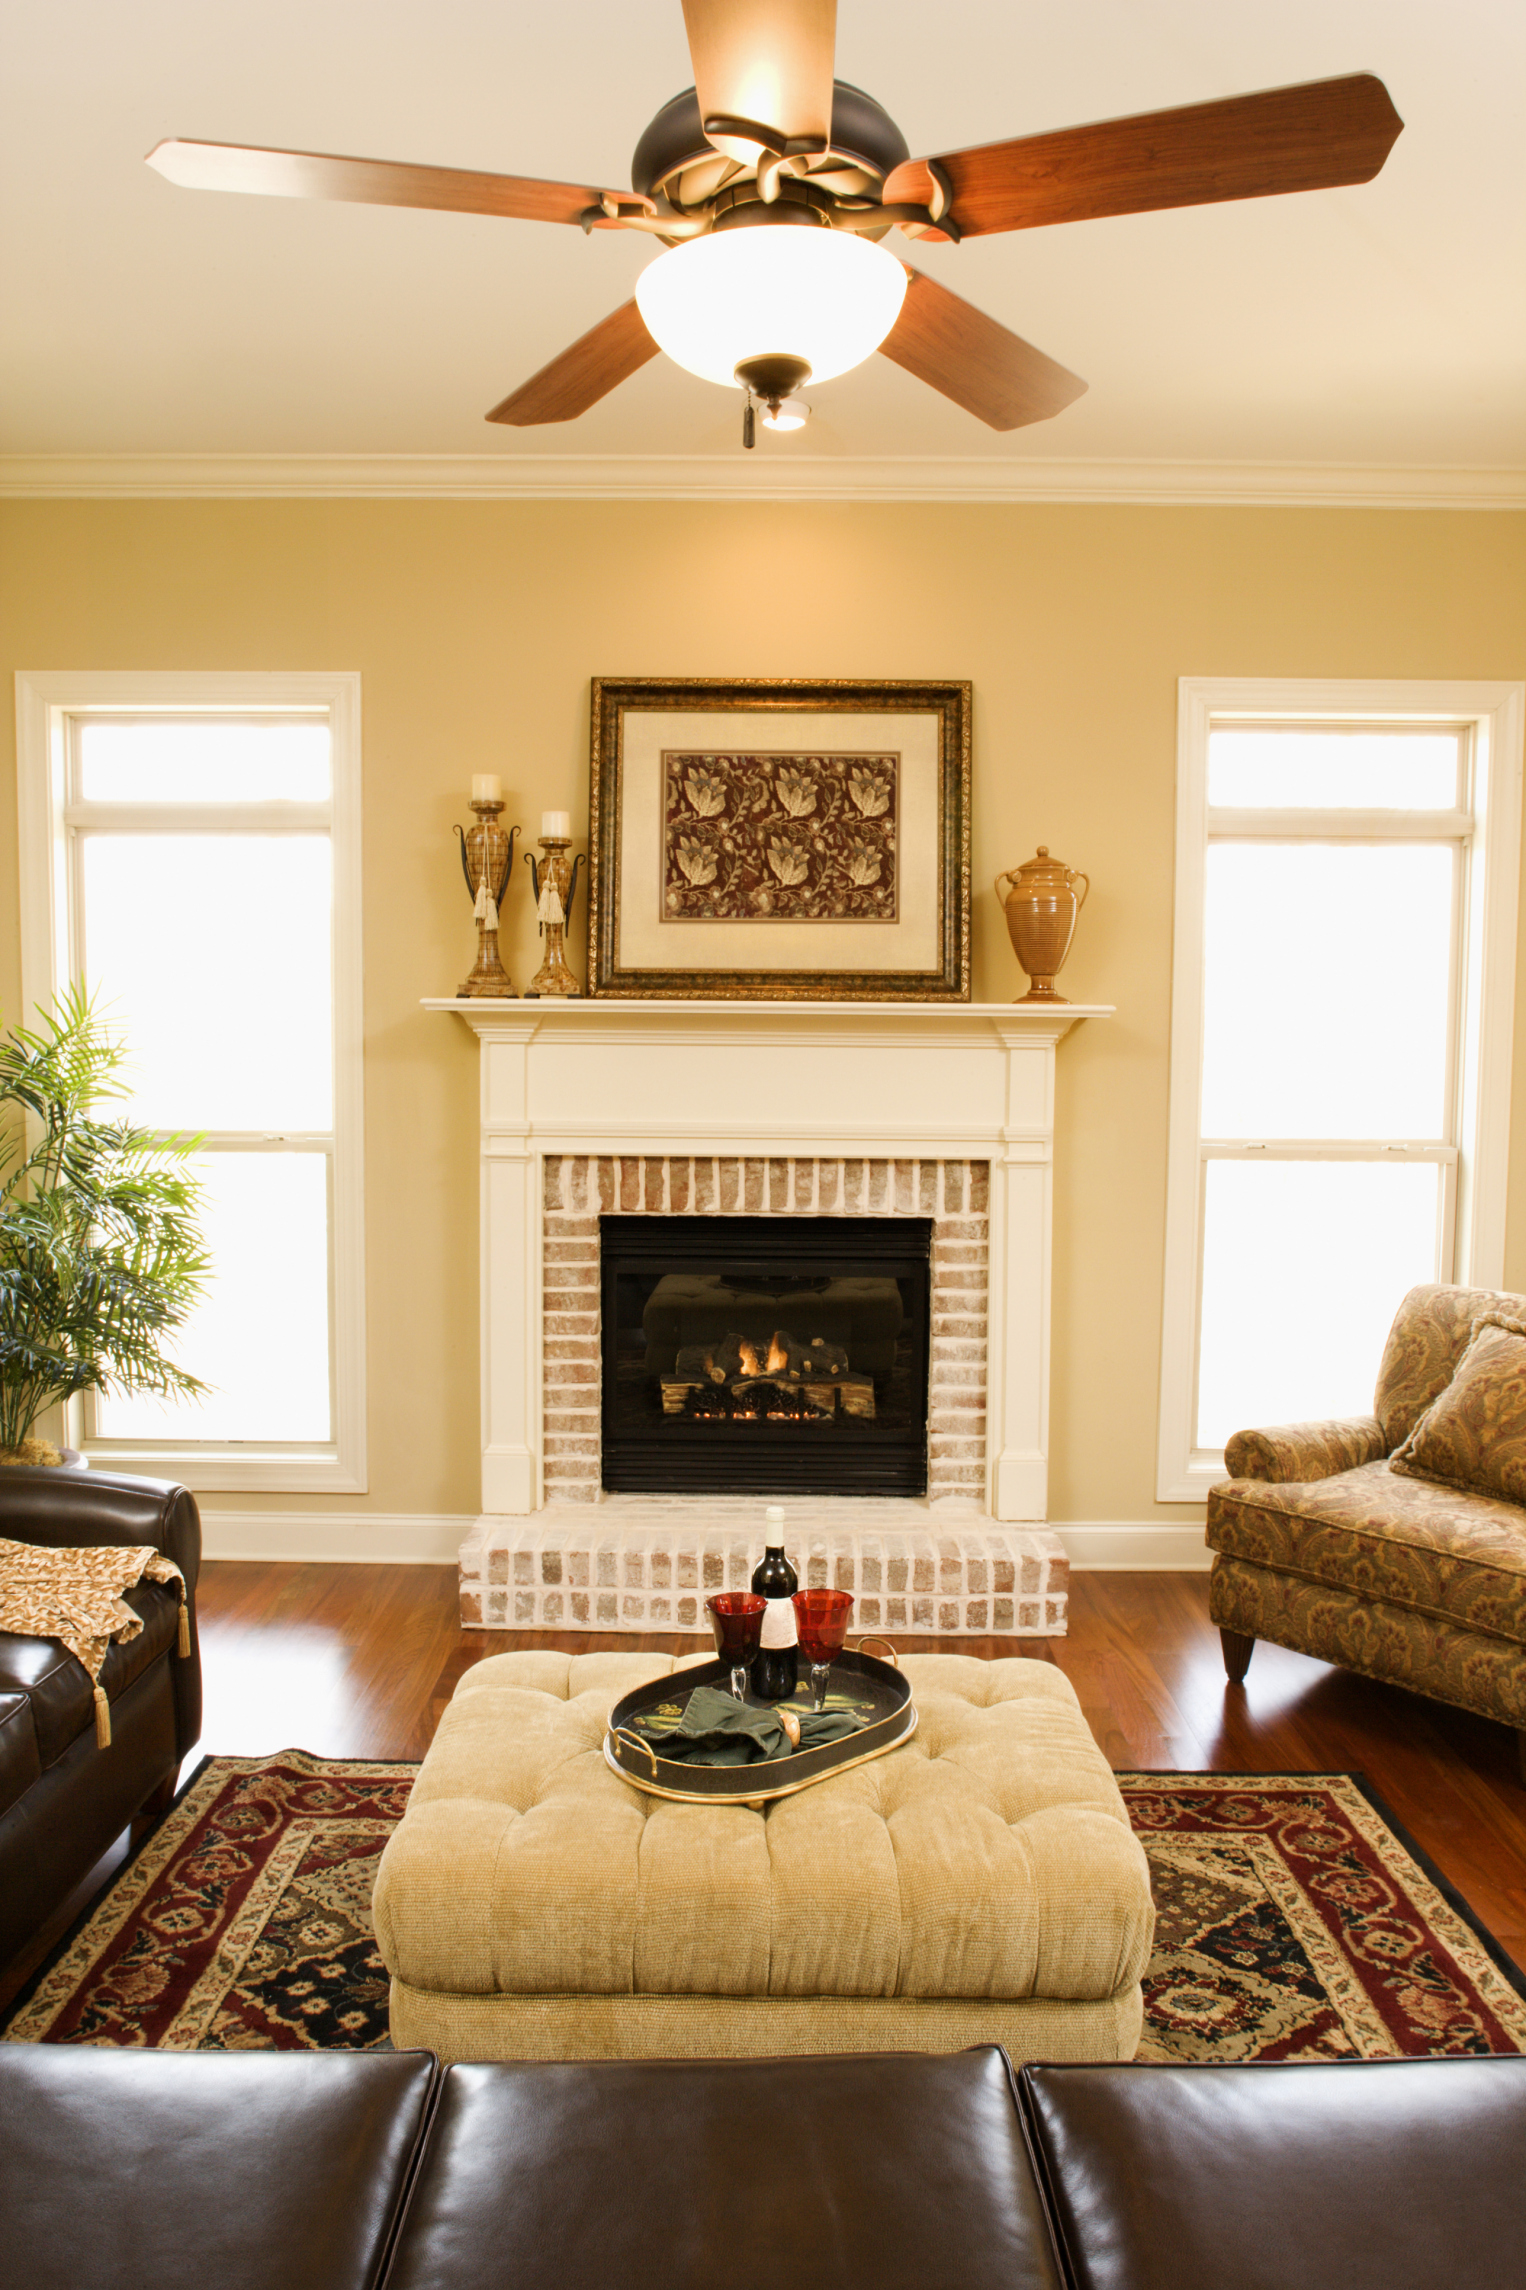 How To Match A Ceiling Fan To A Room Home Guides Sf Gate